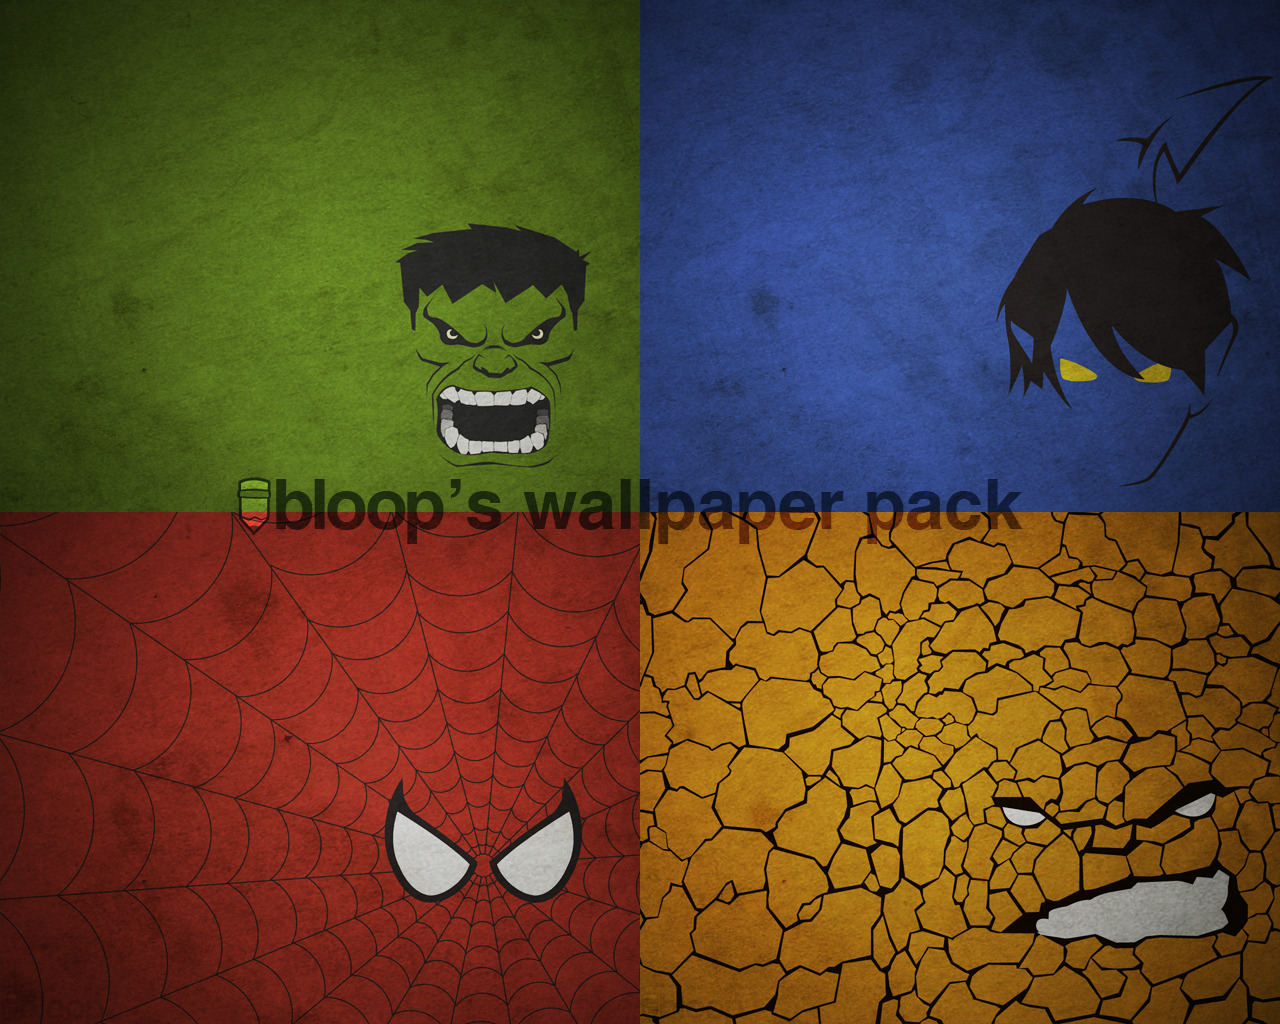 Superhero Wallpaper by Bloopsie bloopsie:  http://blo0p.deviantart.com/art/Bloops-Superhero-Wallpaper-269504899 All of the superheroes (47 so far!) as desktop backgrounds, hope you all enjoy!